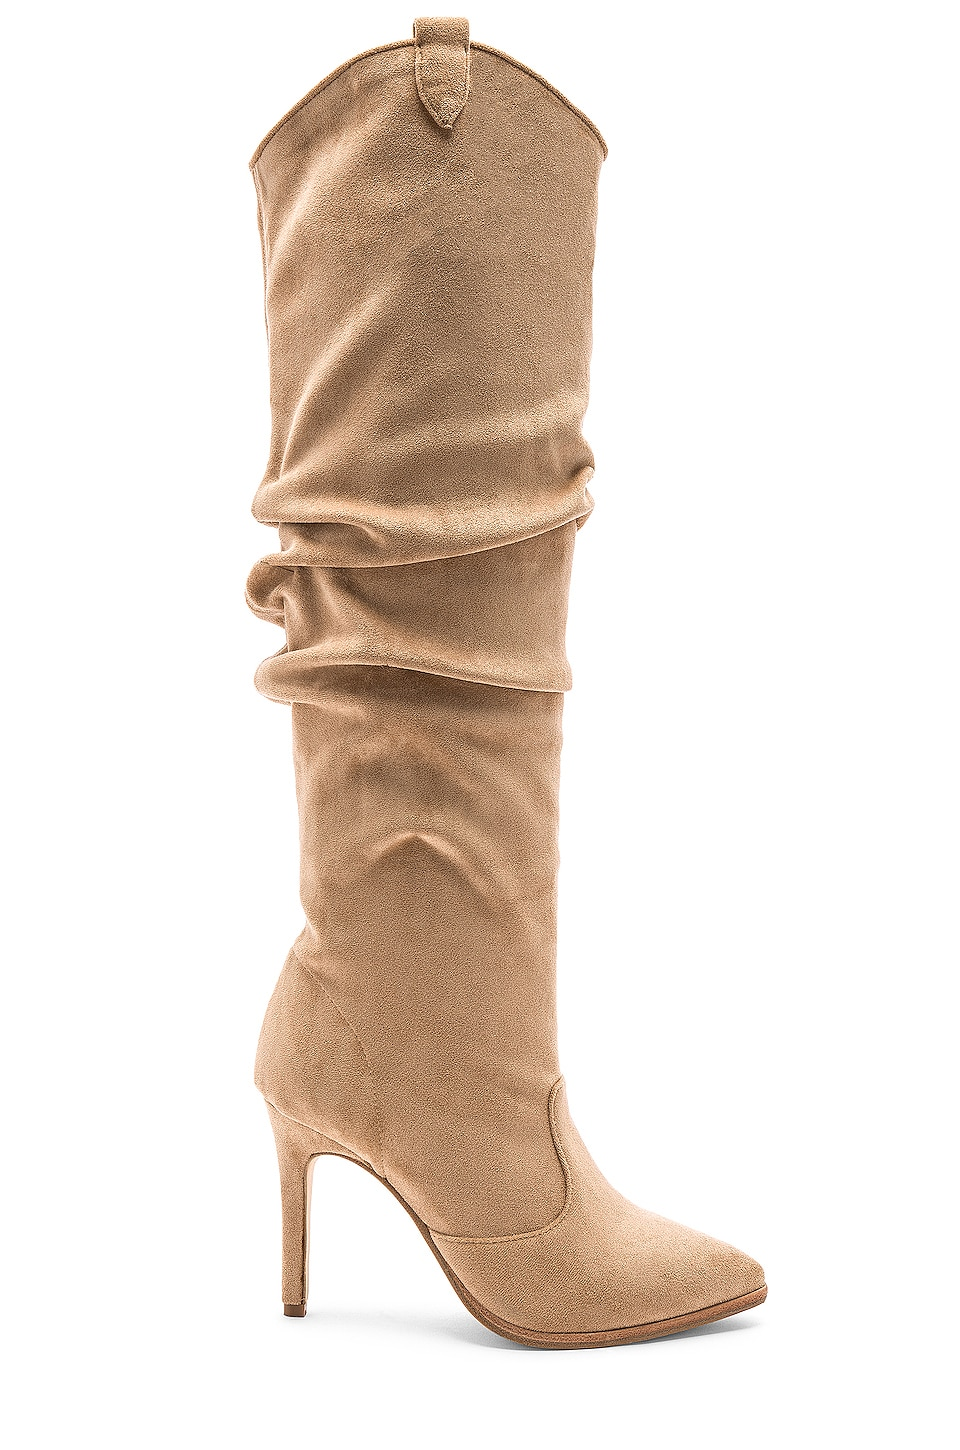 RAYE x STONE_COLD_FOX Austin Boot in Tan